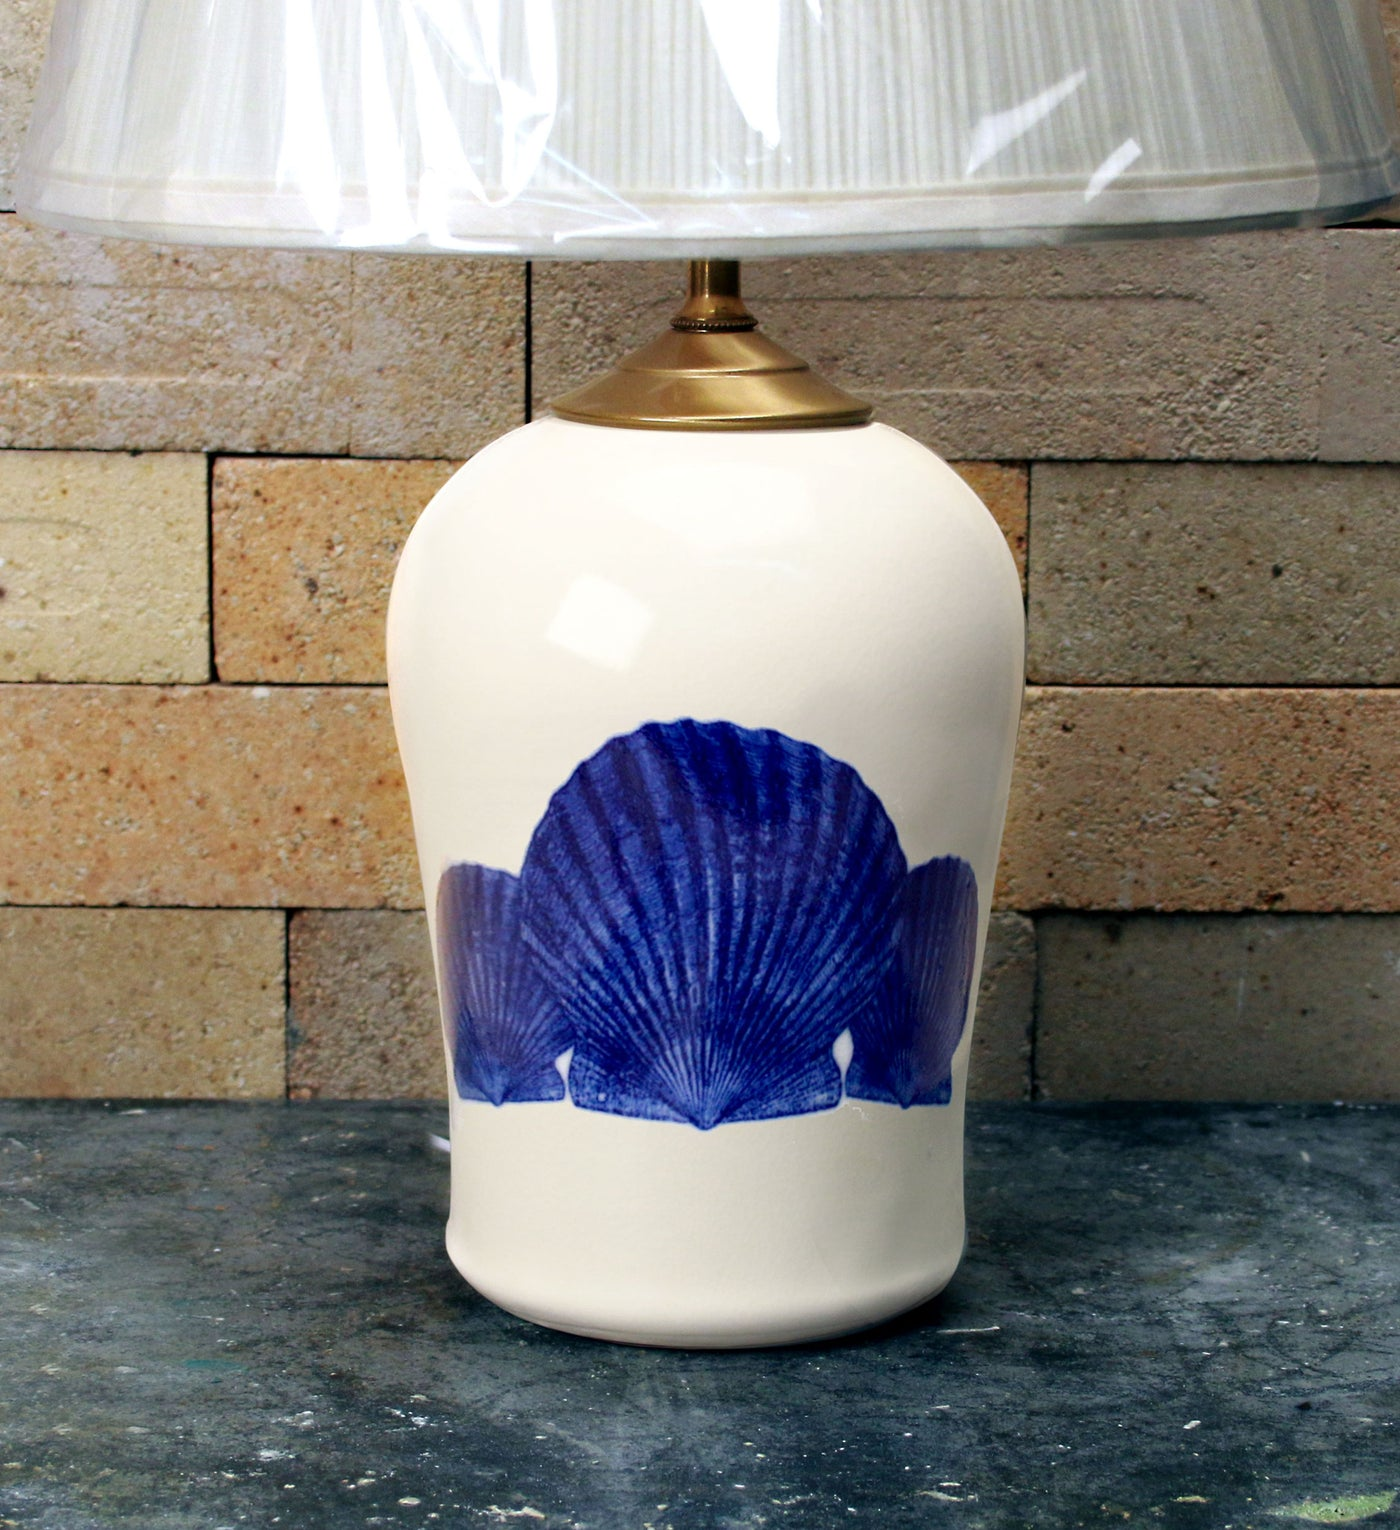 Chatham Pottery Scallop Shells In Glaze Decal Small Lamp